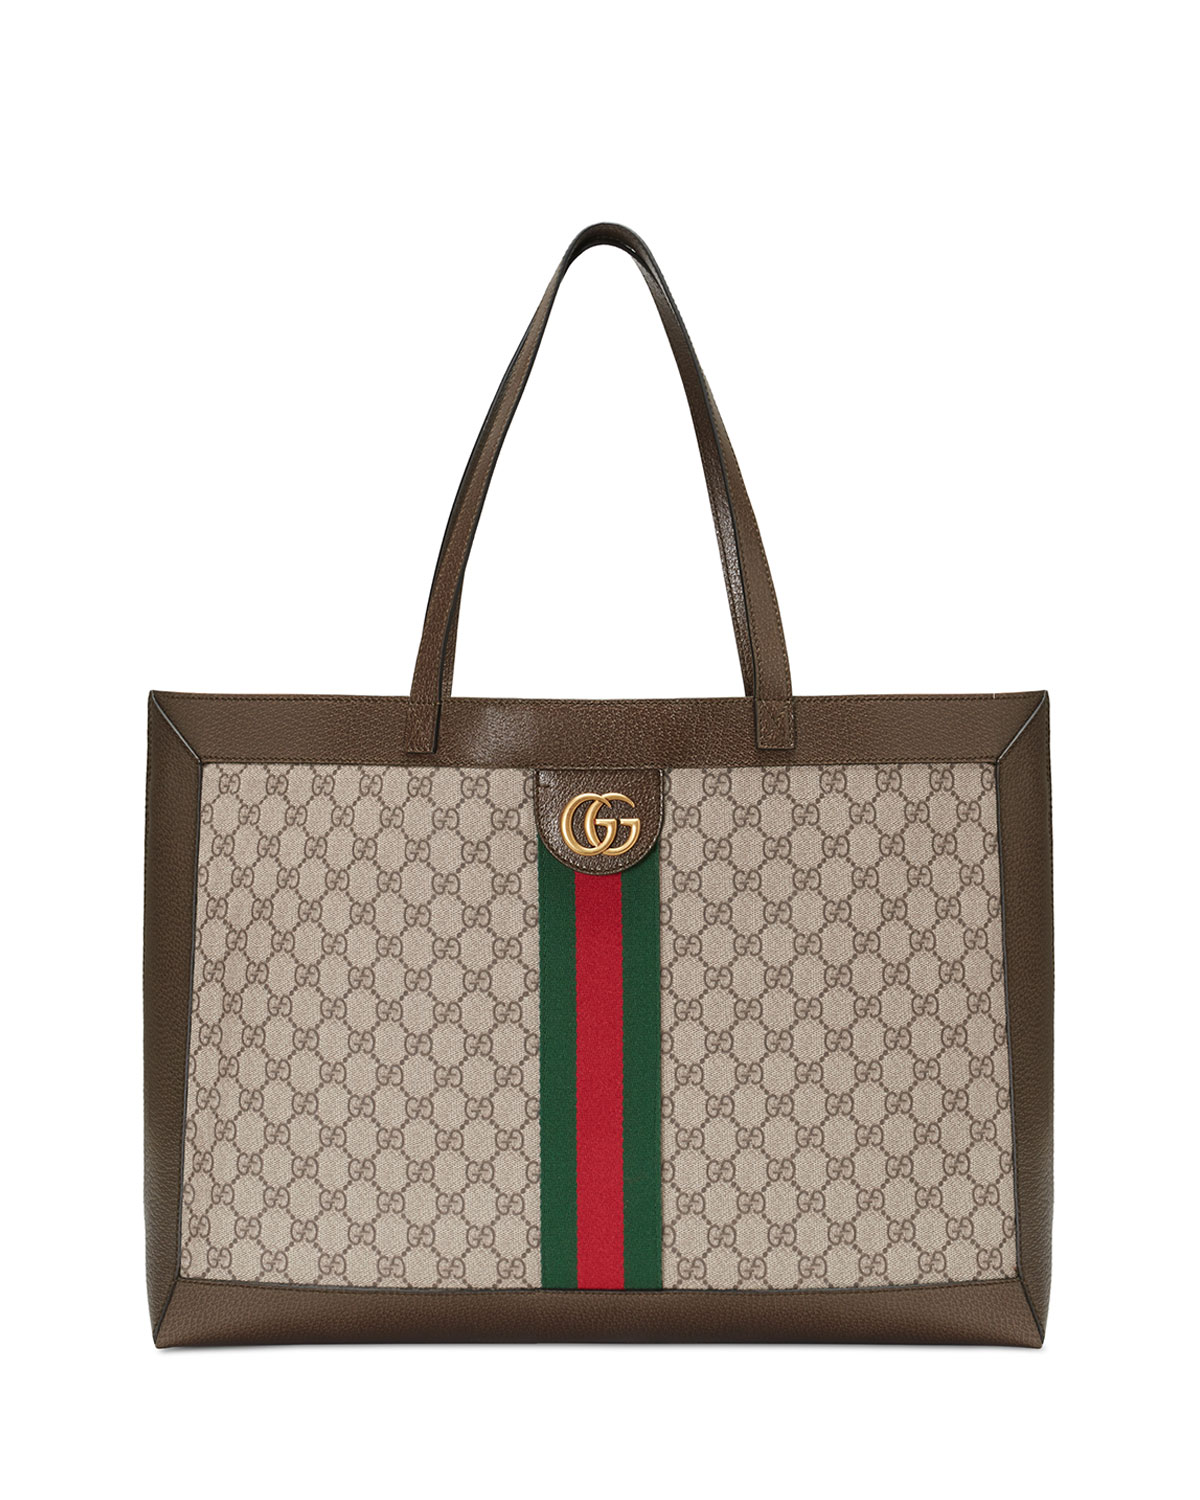 f5f0320d29ae Gucci Ophidia Soft GG Supreme Canvas Tote Bag with Web | Neiman Marcus